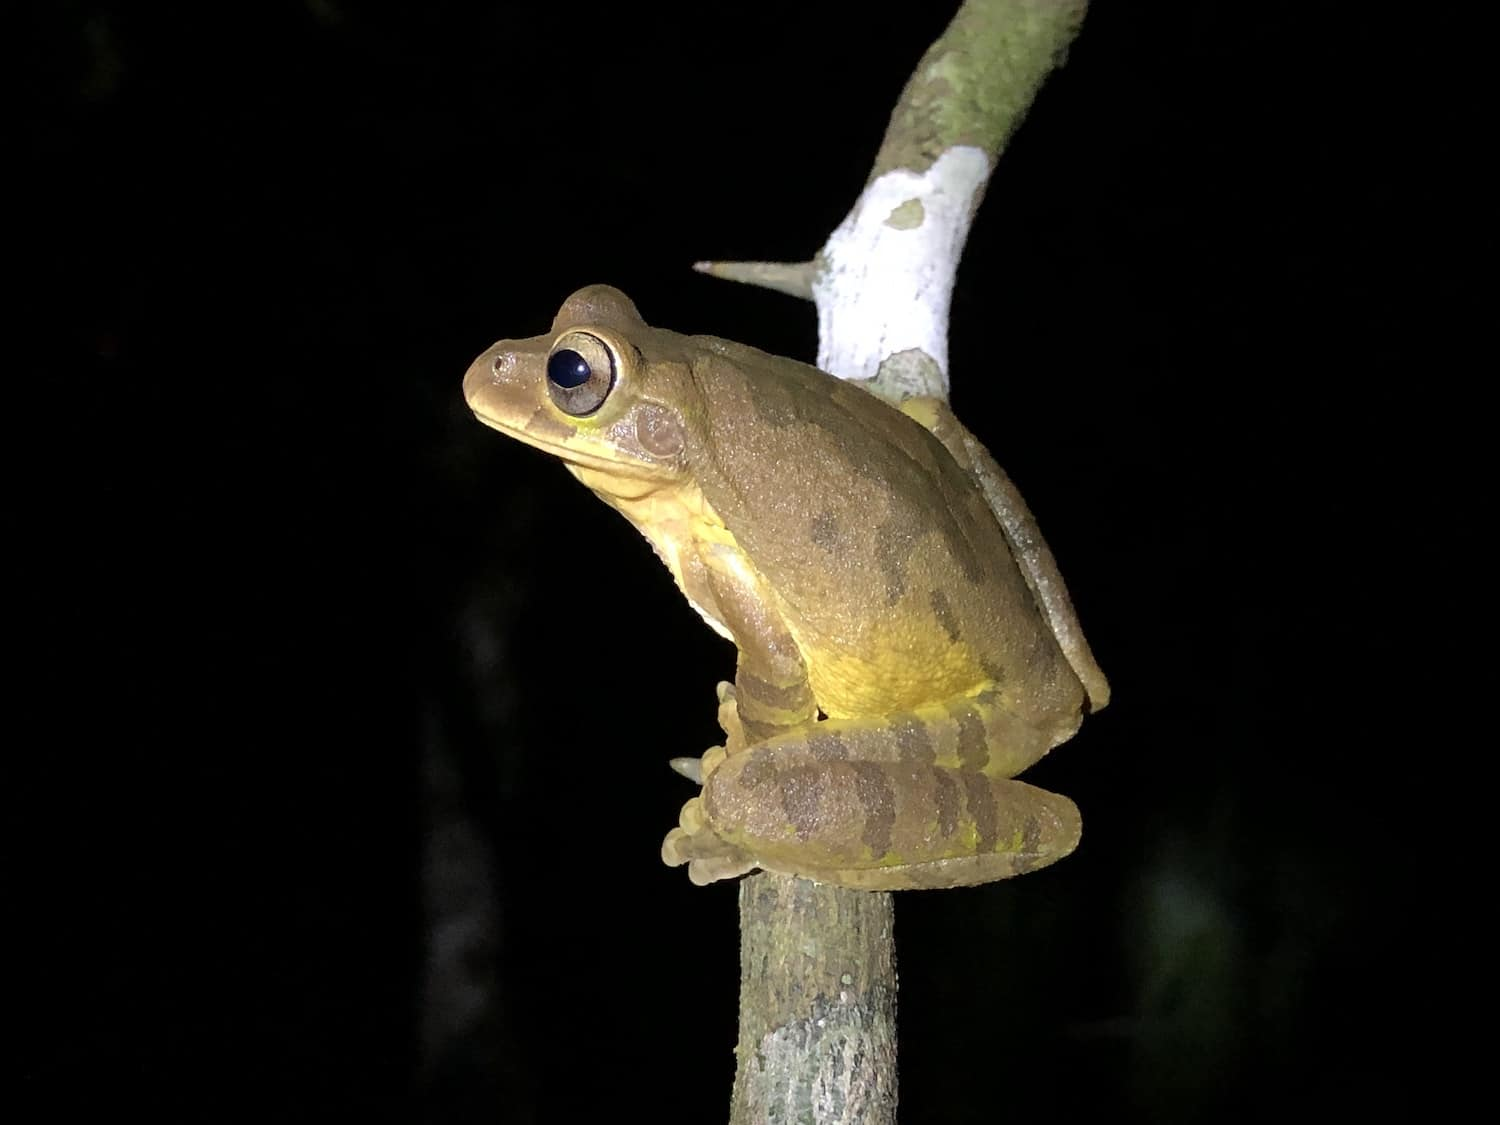 A frog on a branch in Bijagua de Upala, Costa Rica.